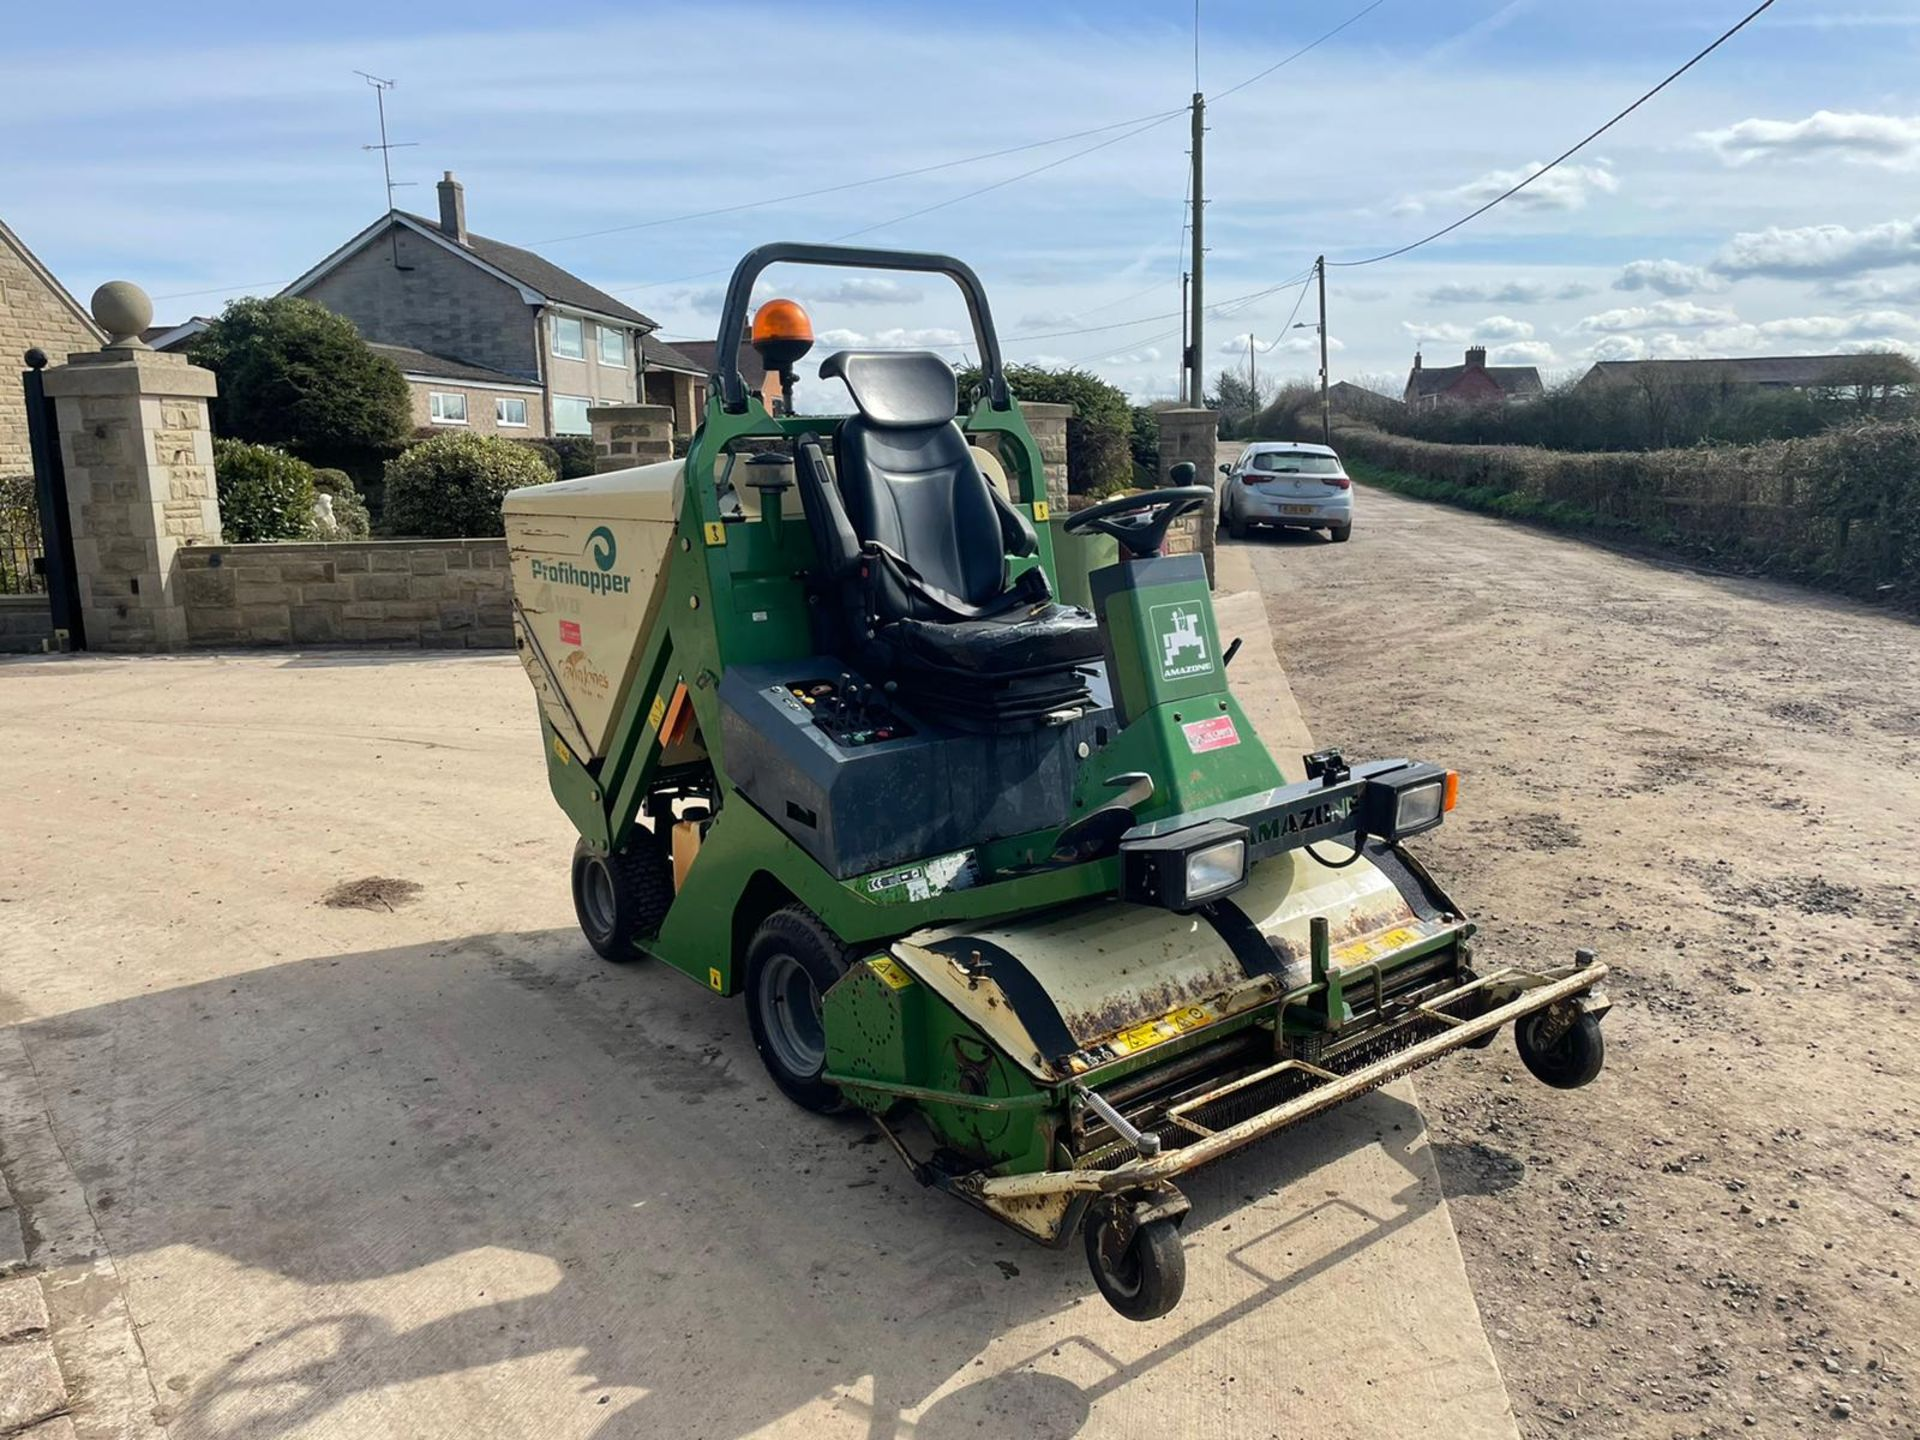 2012 AMAZONE PROFIHOPPER RIDE ON MOWER, RUNS, DRIVES AND CUTS, IN GOOD CONDITION *PLUS VAT* - Image 2 of 14